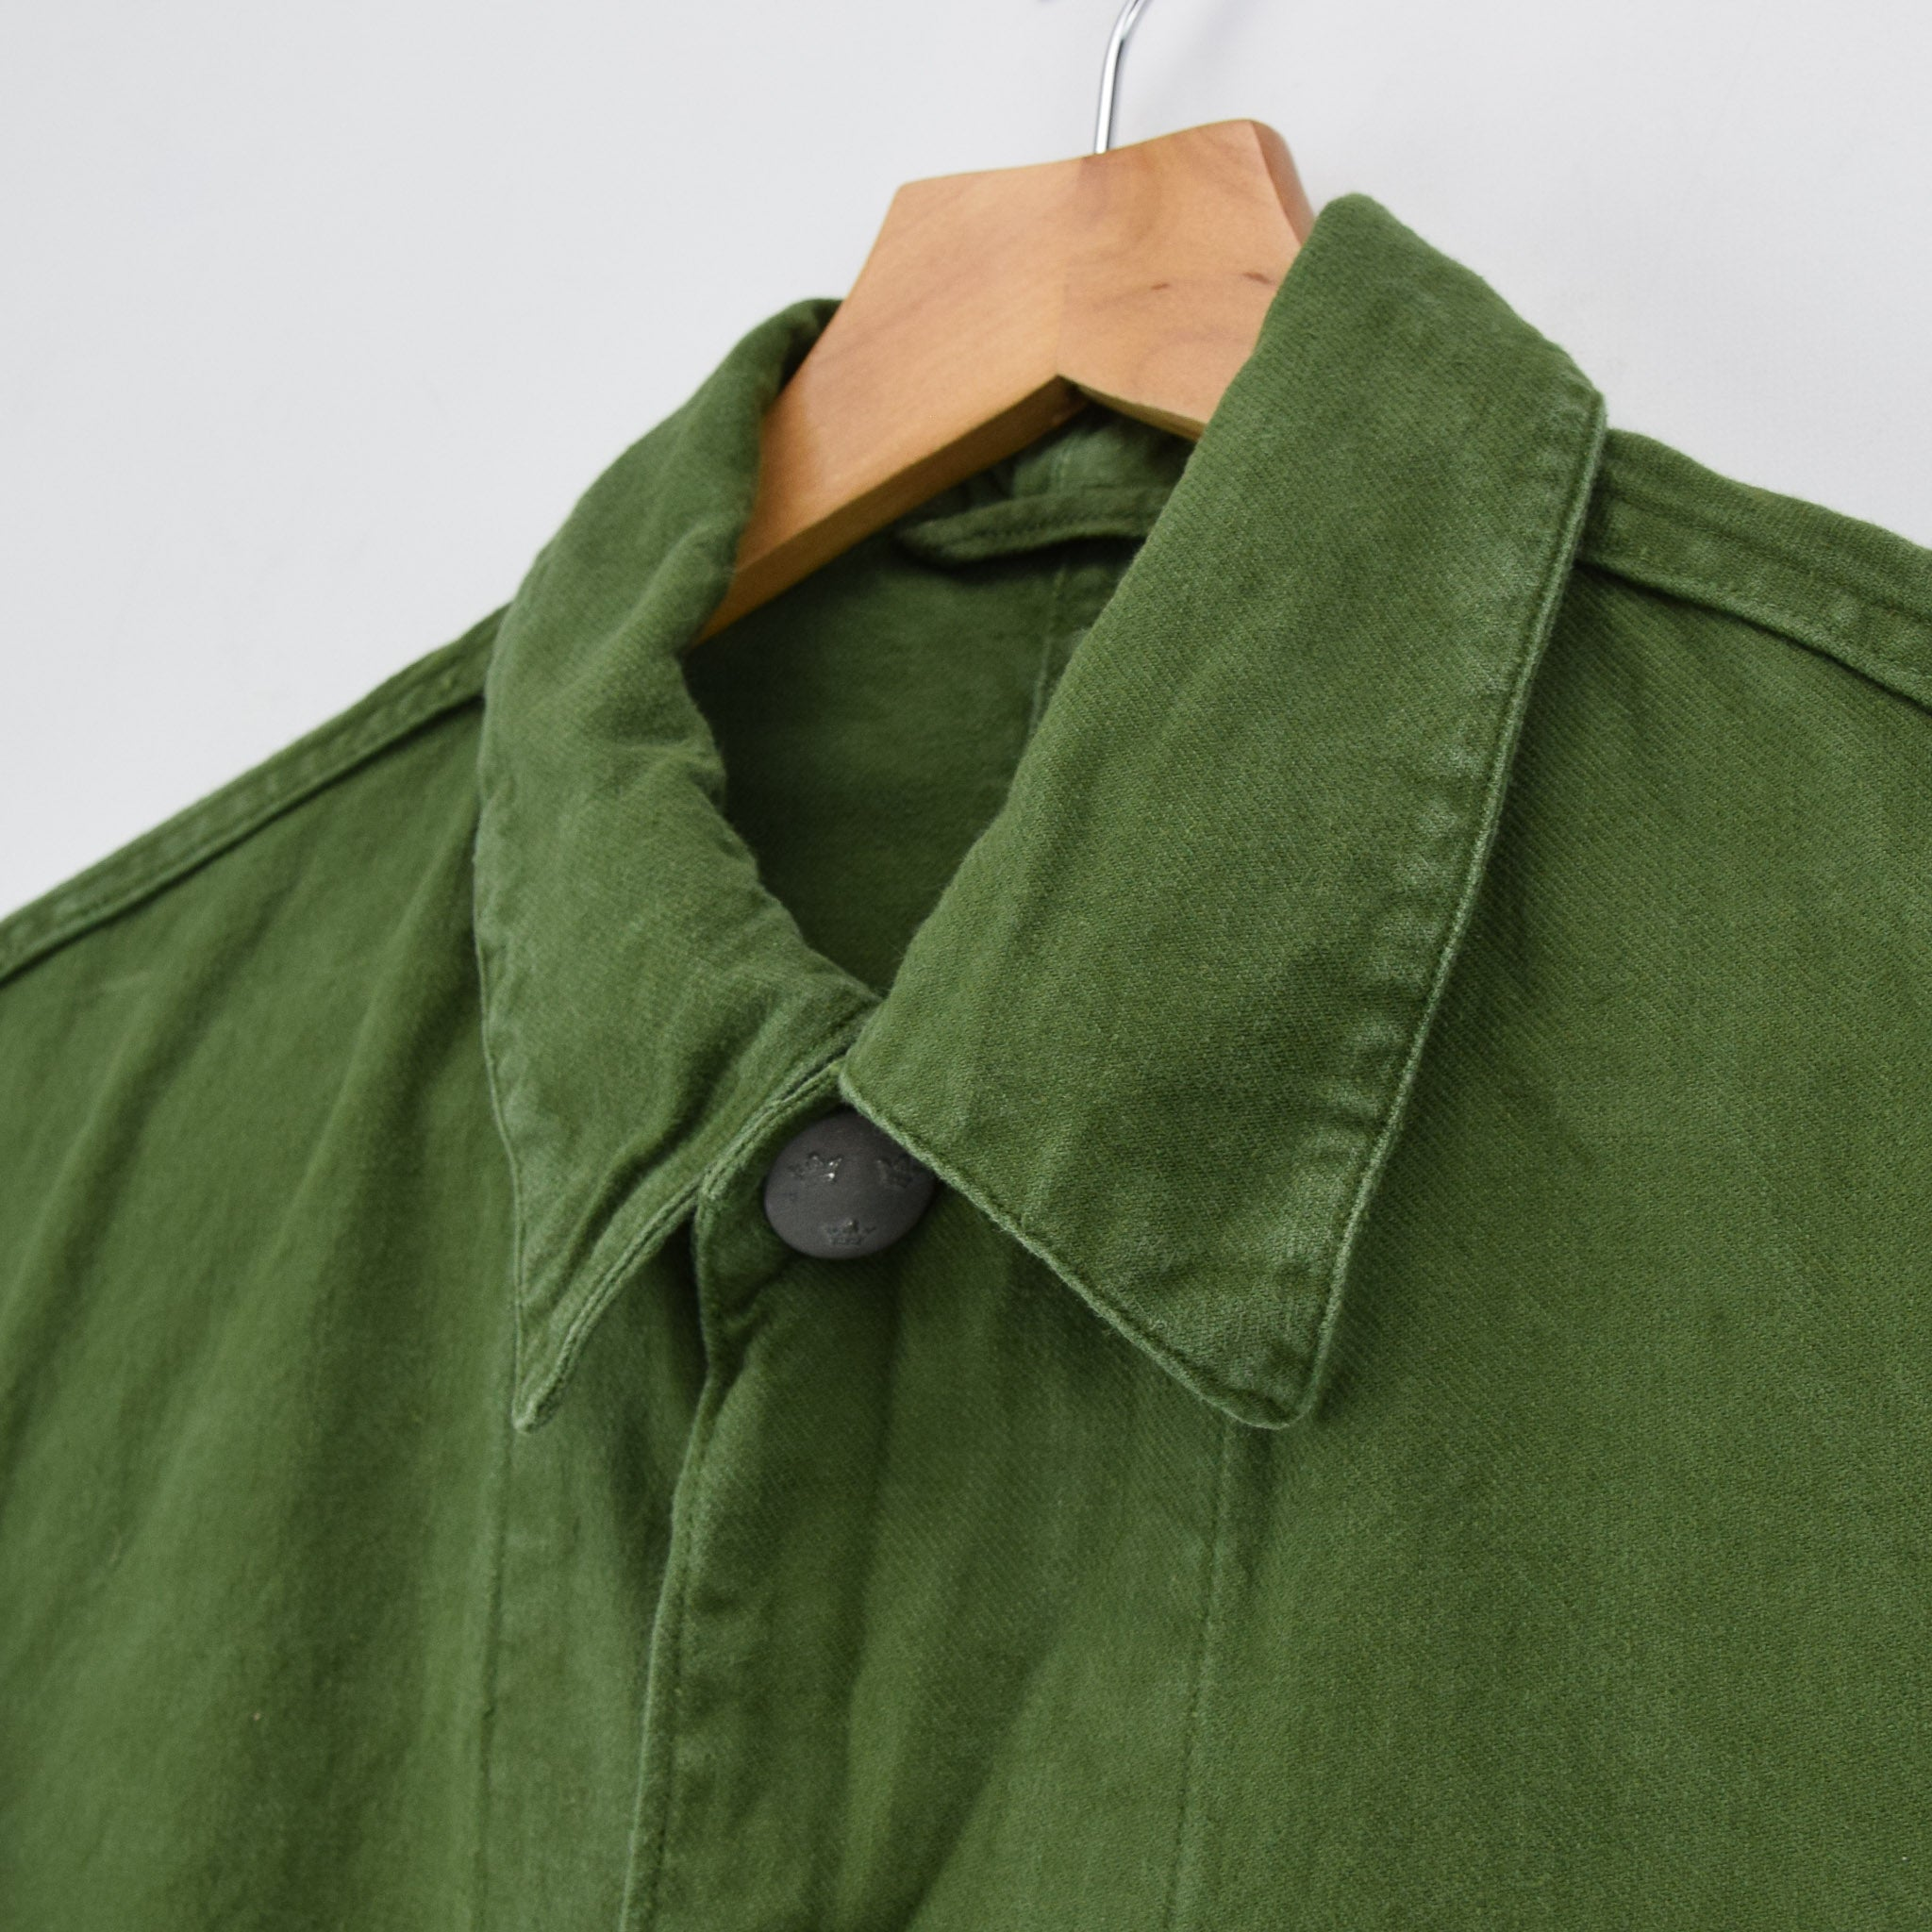 Vintage 60s Swedish Military Field Jacket Worker Style Distressed Green S collar